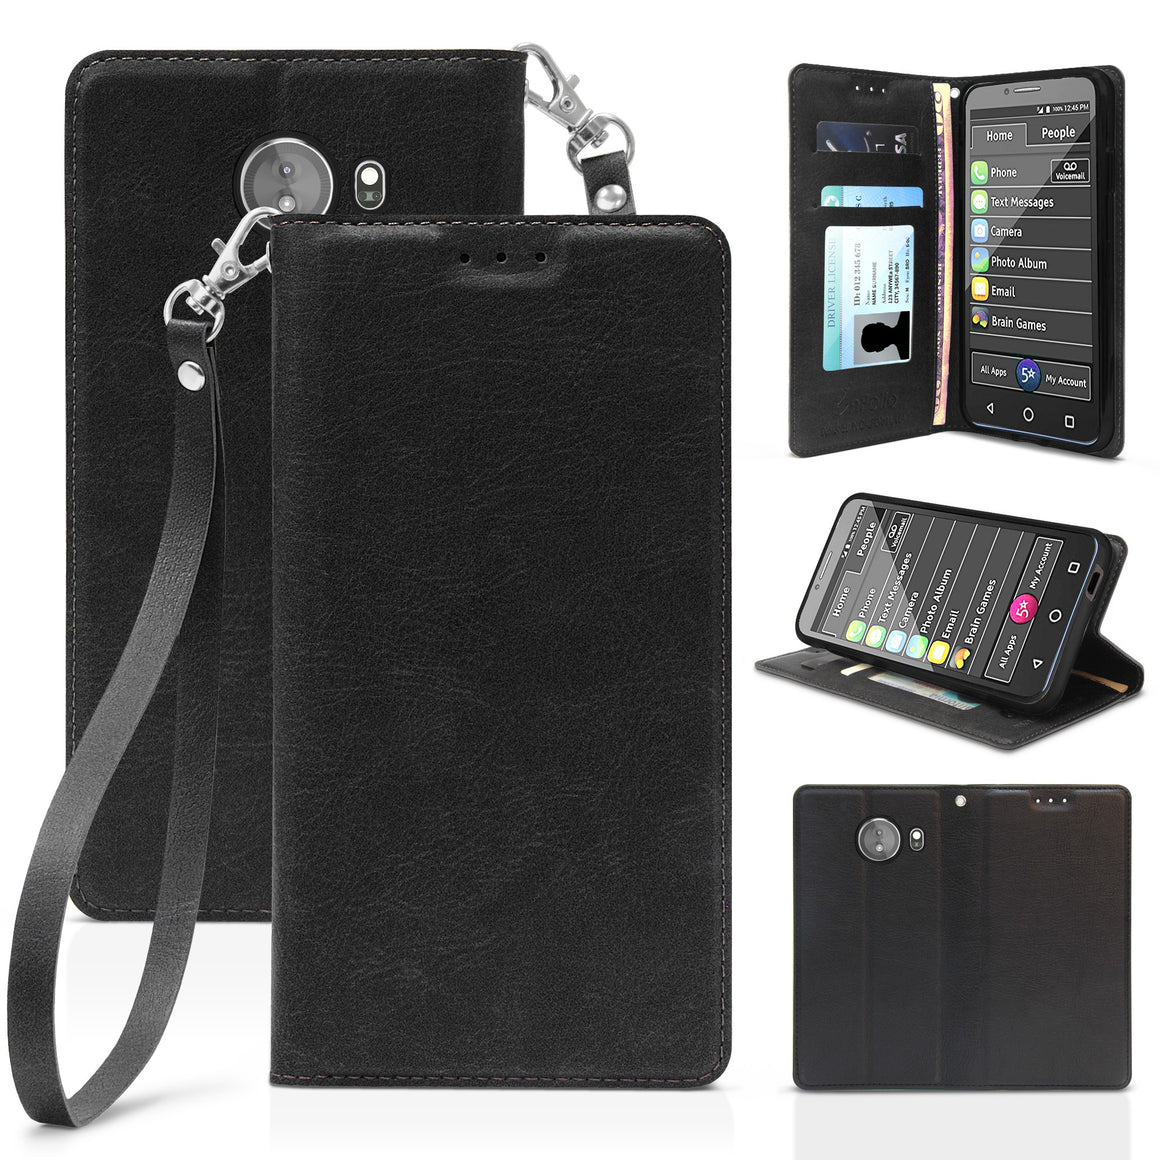 "Infolio L For Greatcall Jitterbug XL 5.5"" Black with Clear Gel"